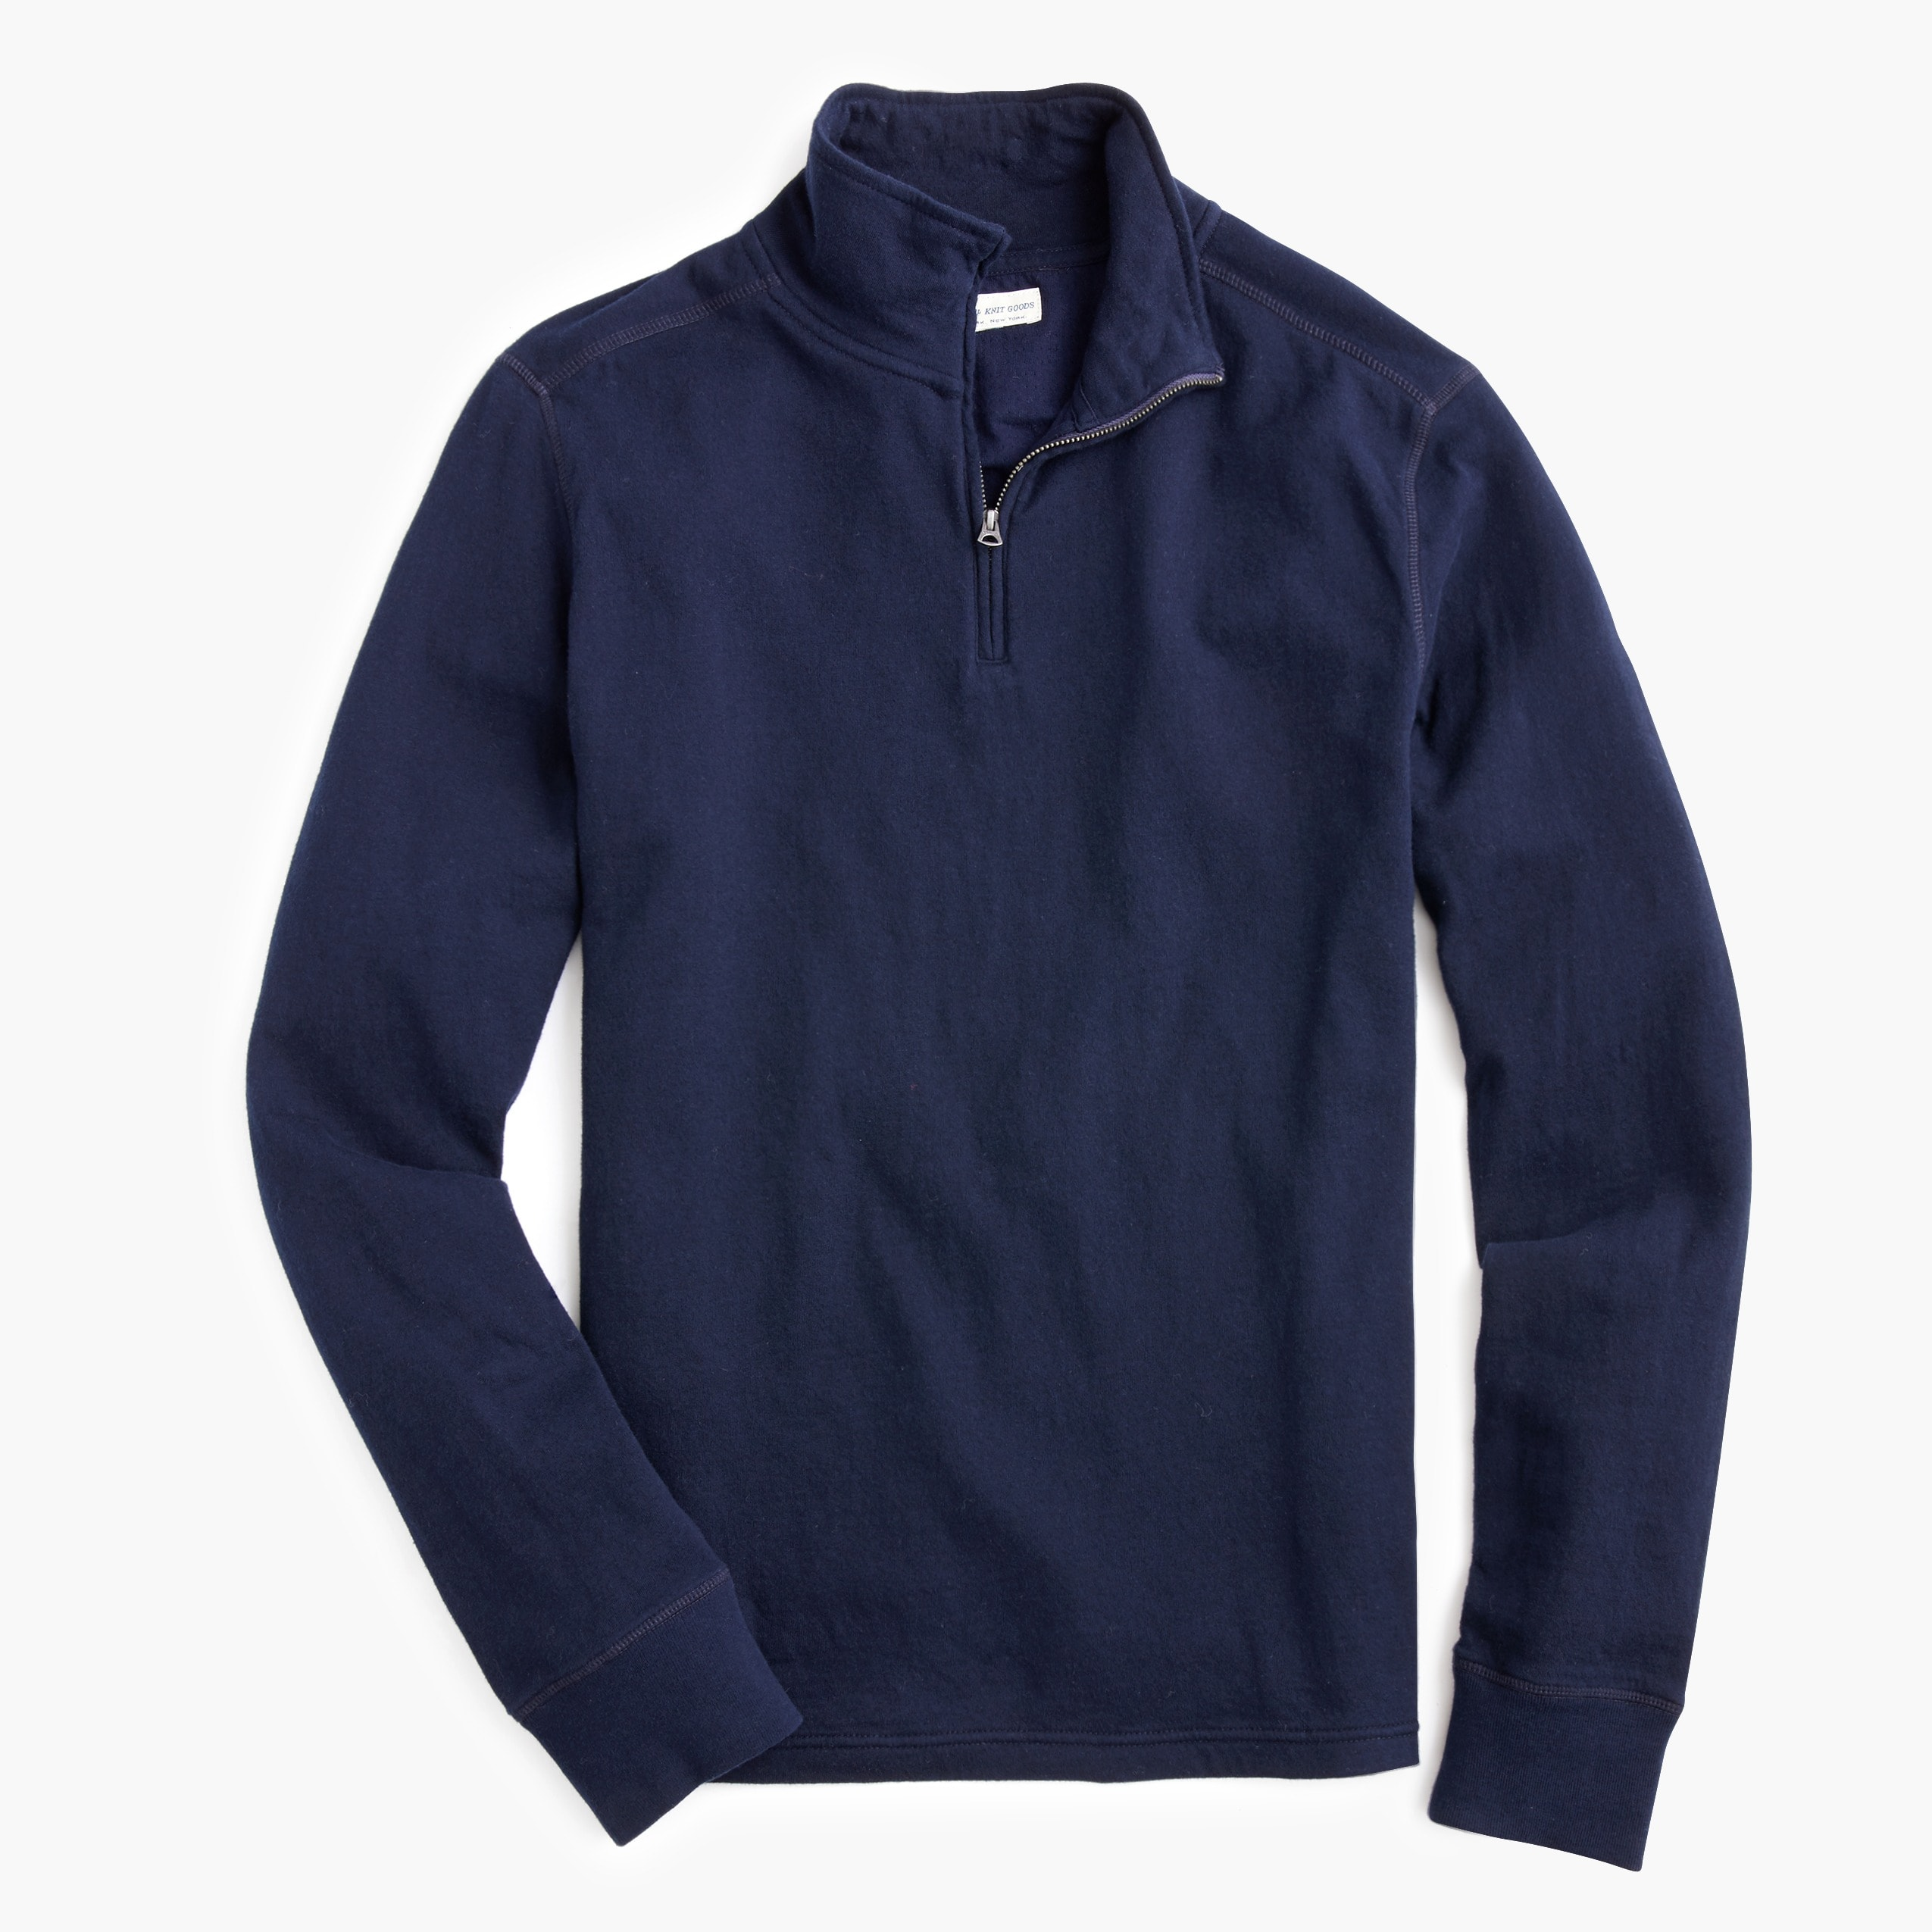 mens Tall double-knit half-zip pullover